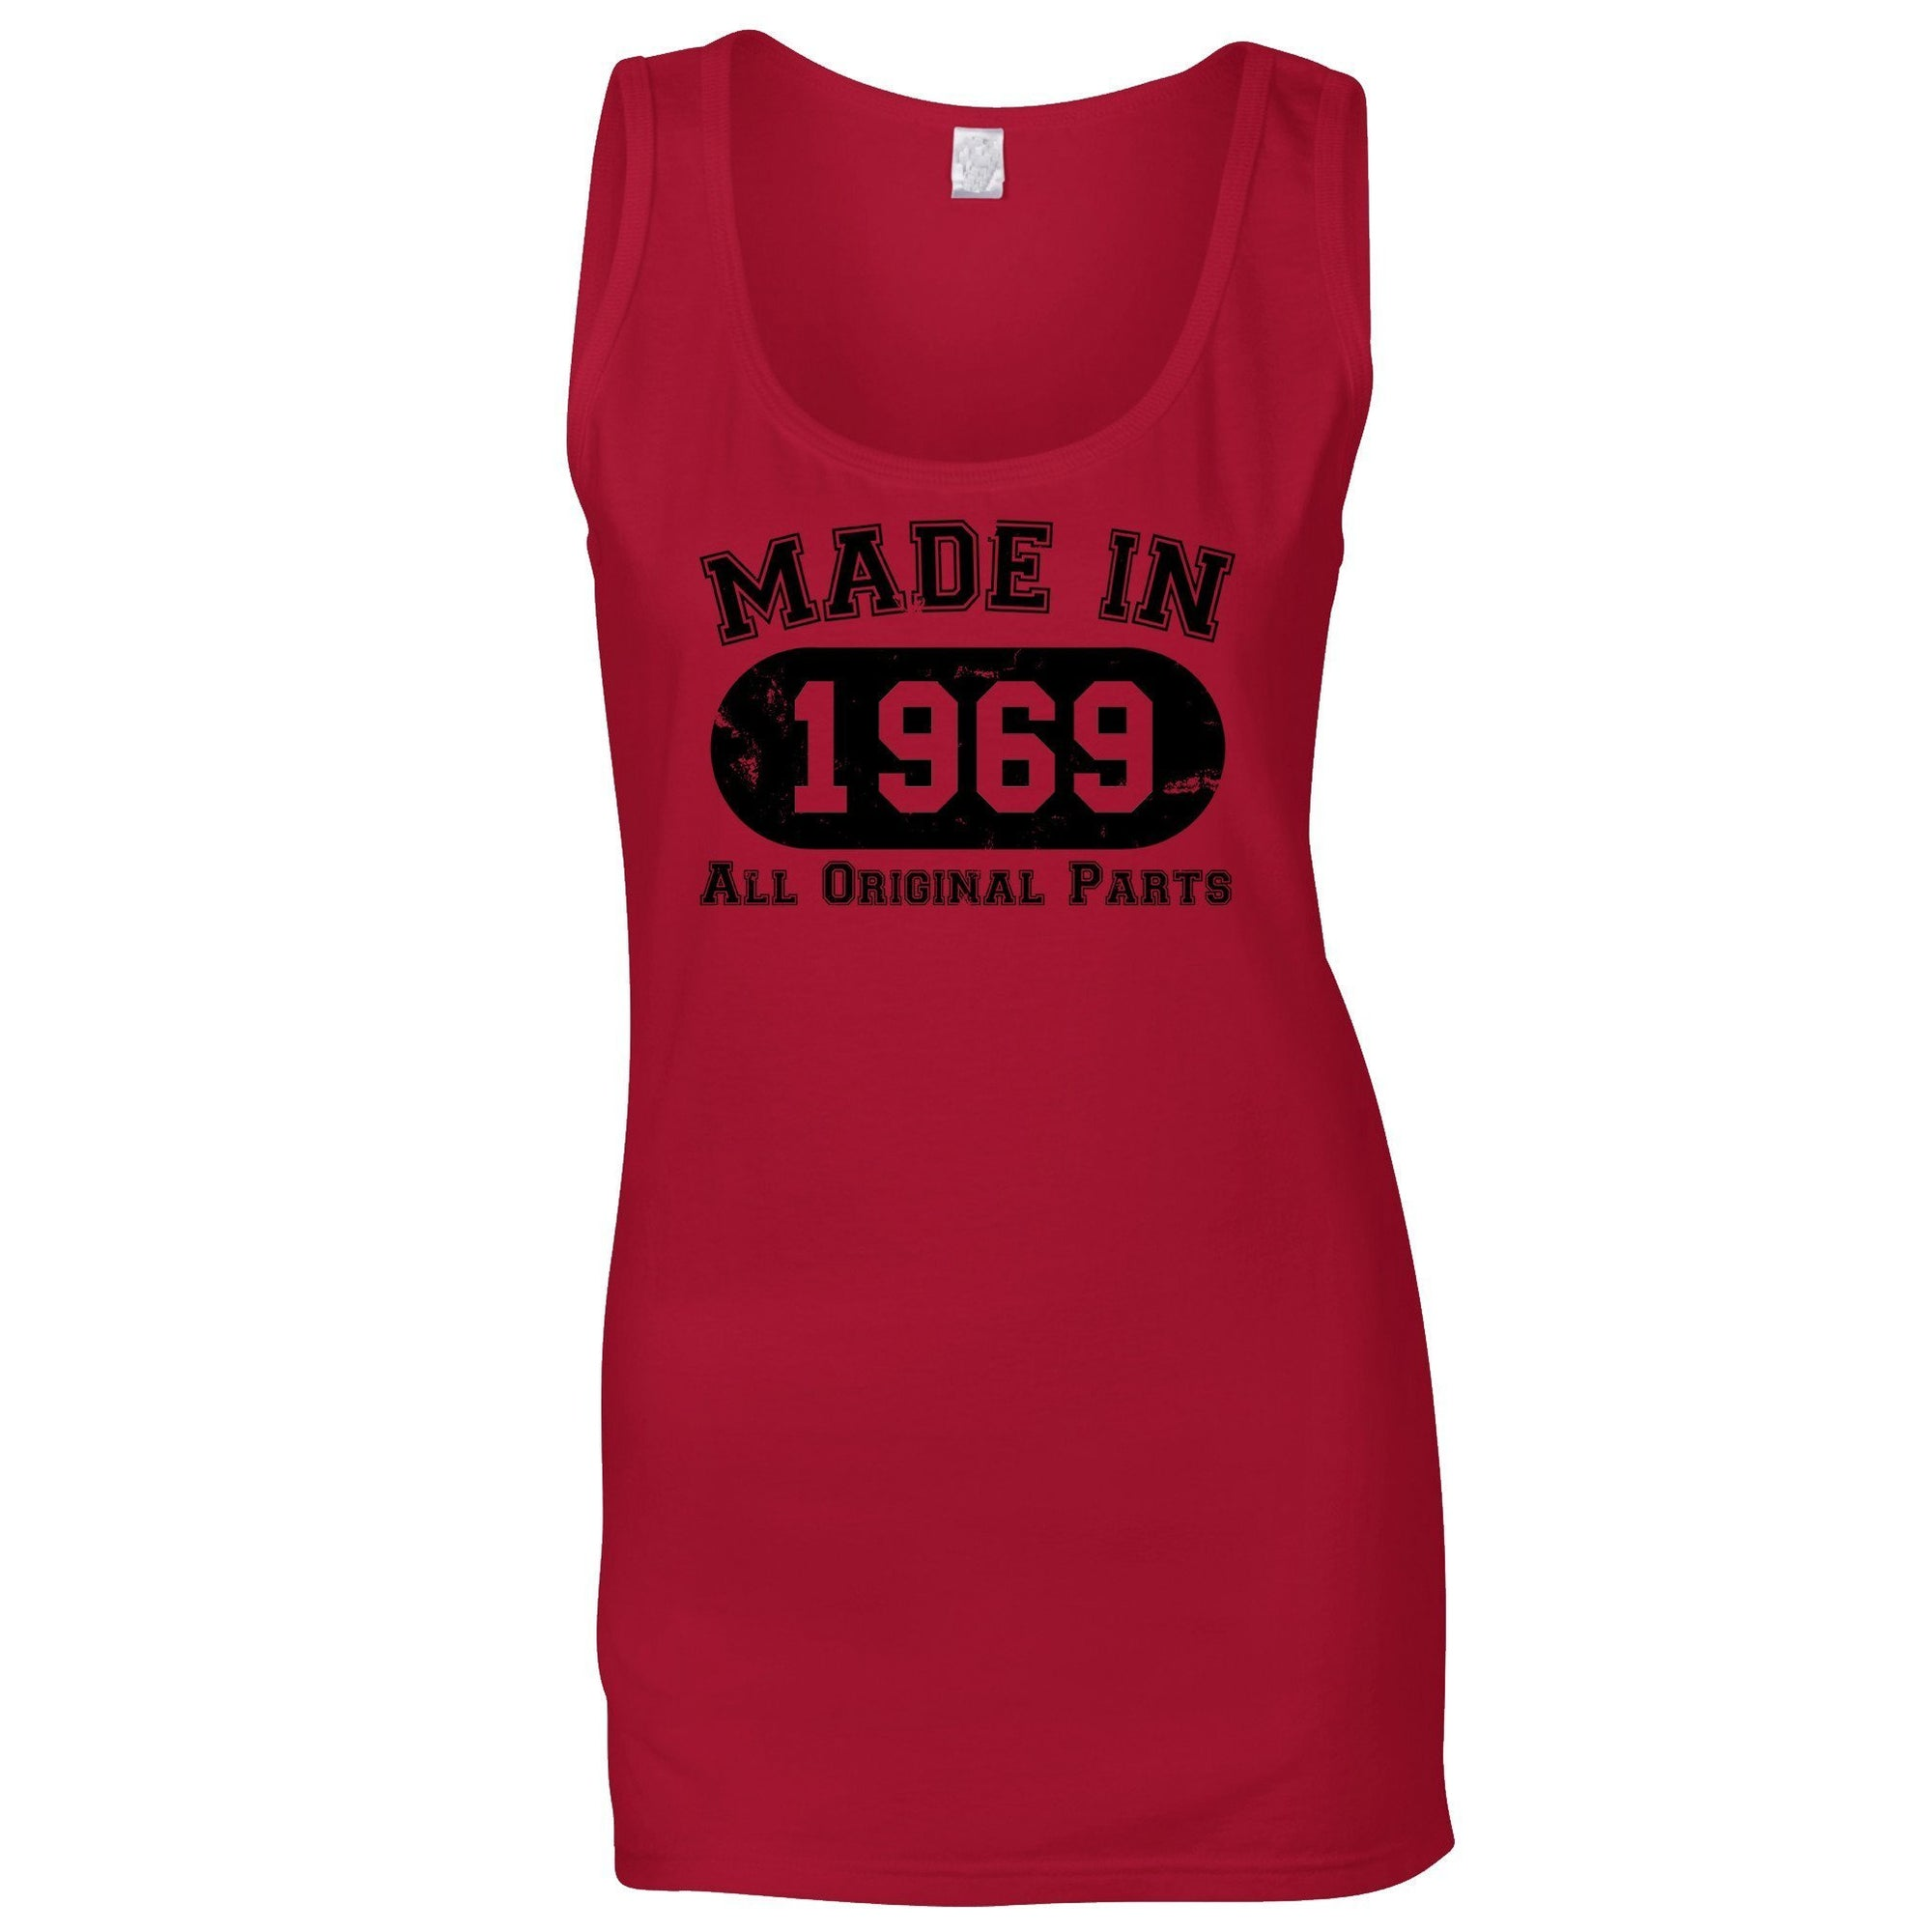 Made in 1969 All Original Parts Womens Vest [Distressed]